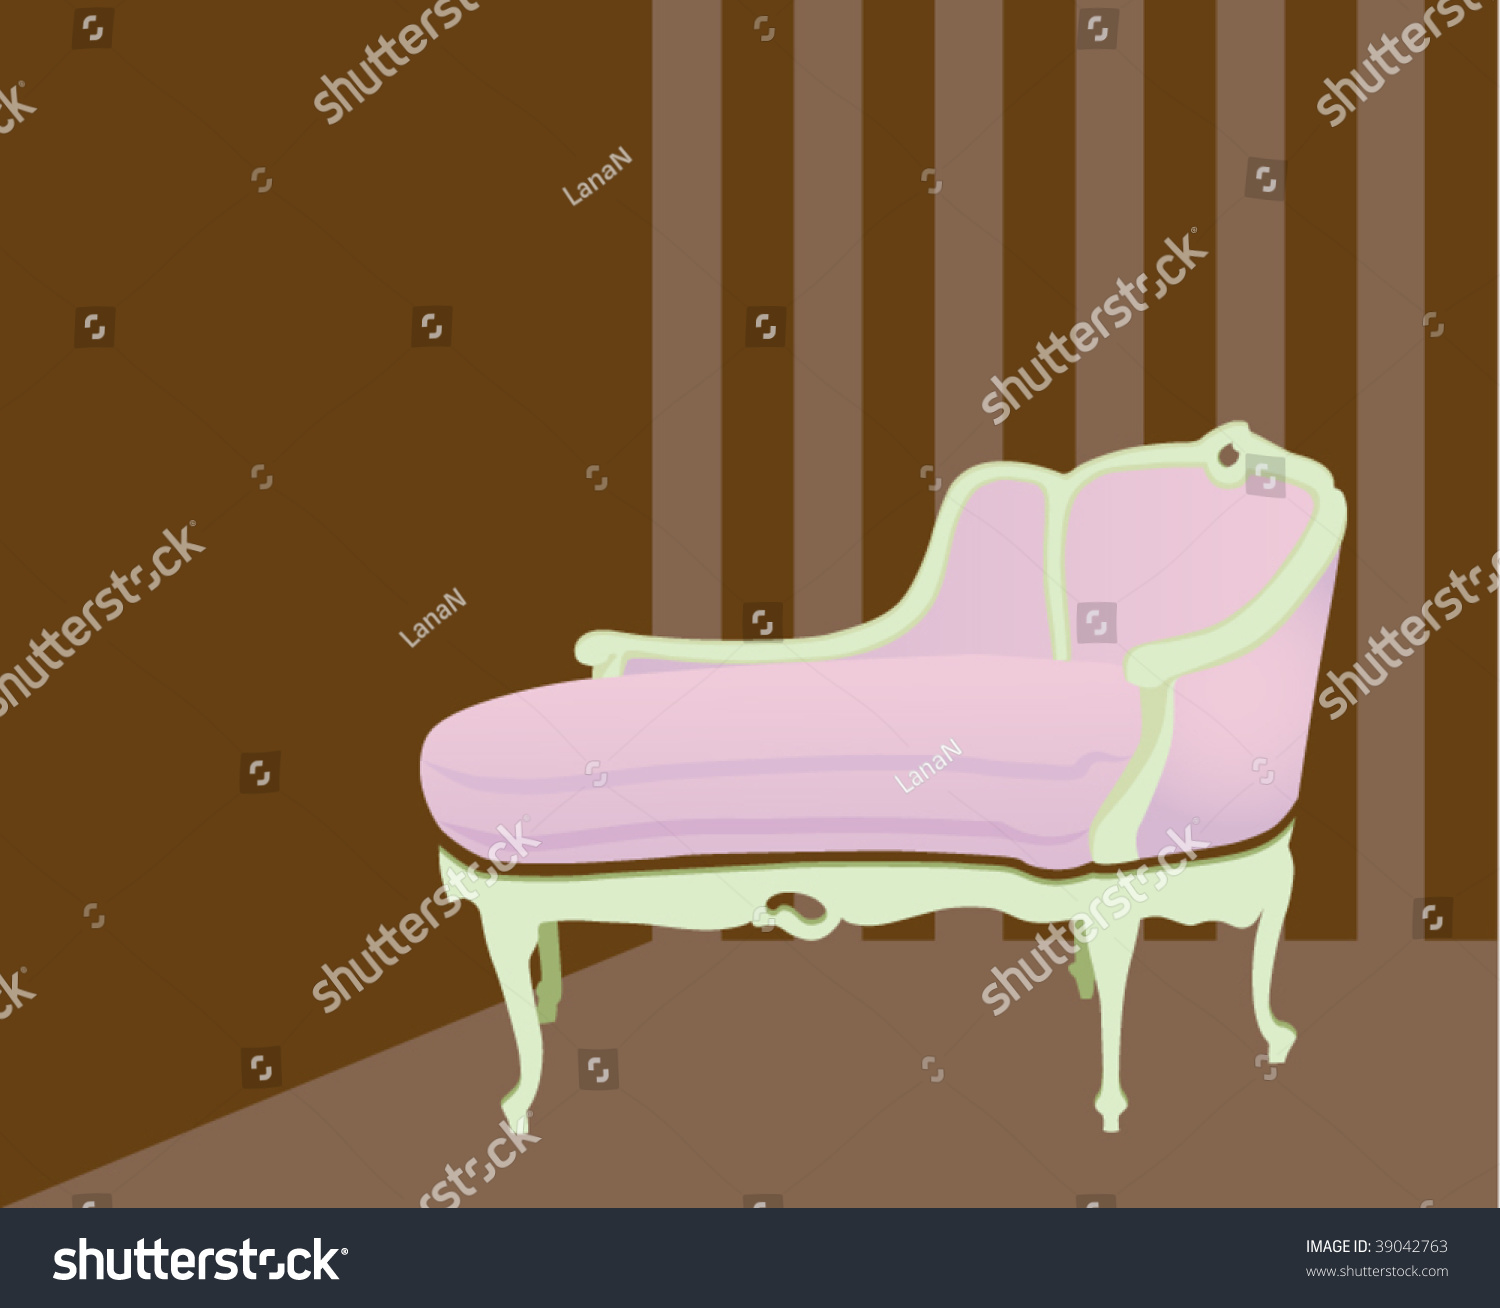 Pink Chaise Lounge Stock Vector Illustration Shutterstock